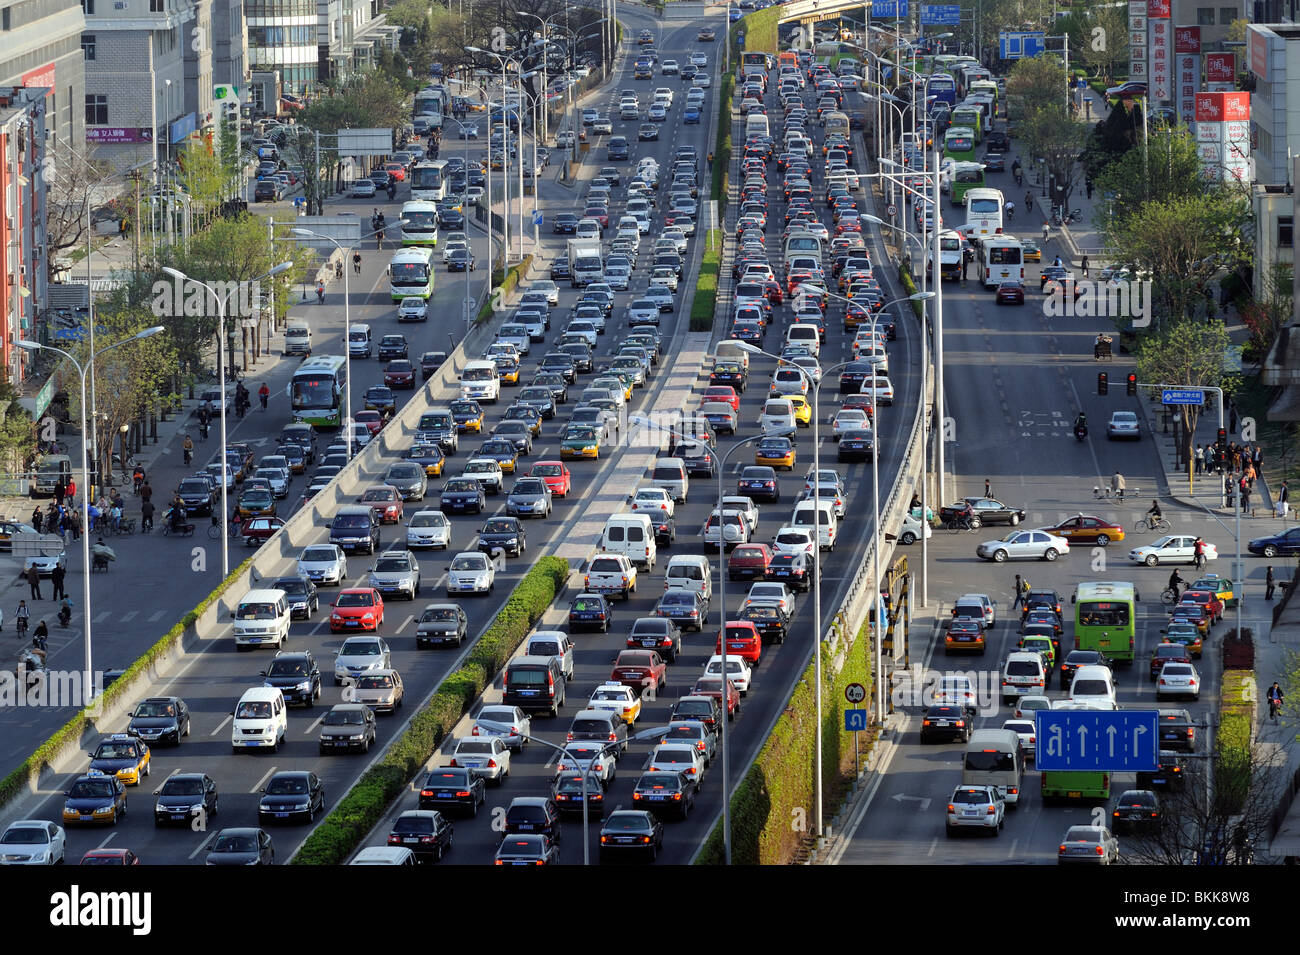 Traffic jam in central Beijing, China. 30-Apr-2010 - Stock Image